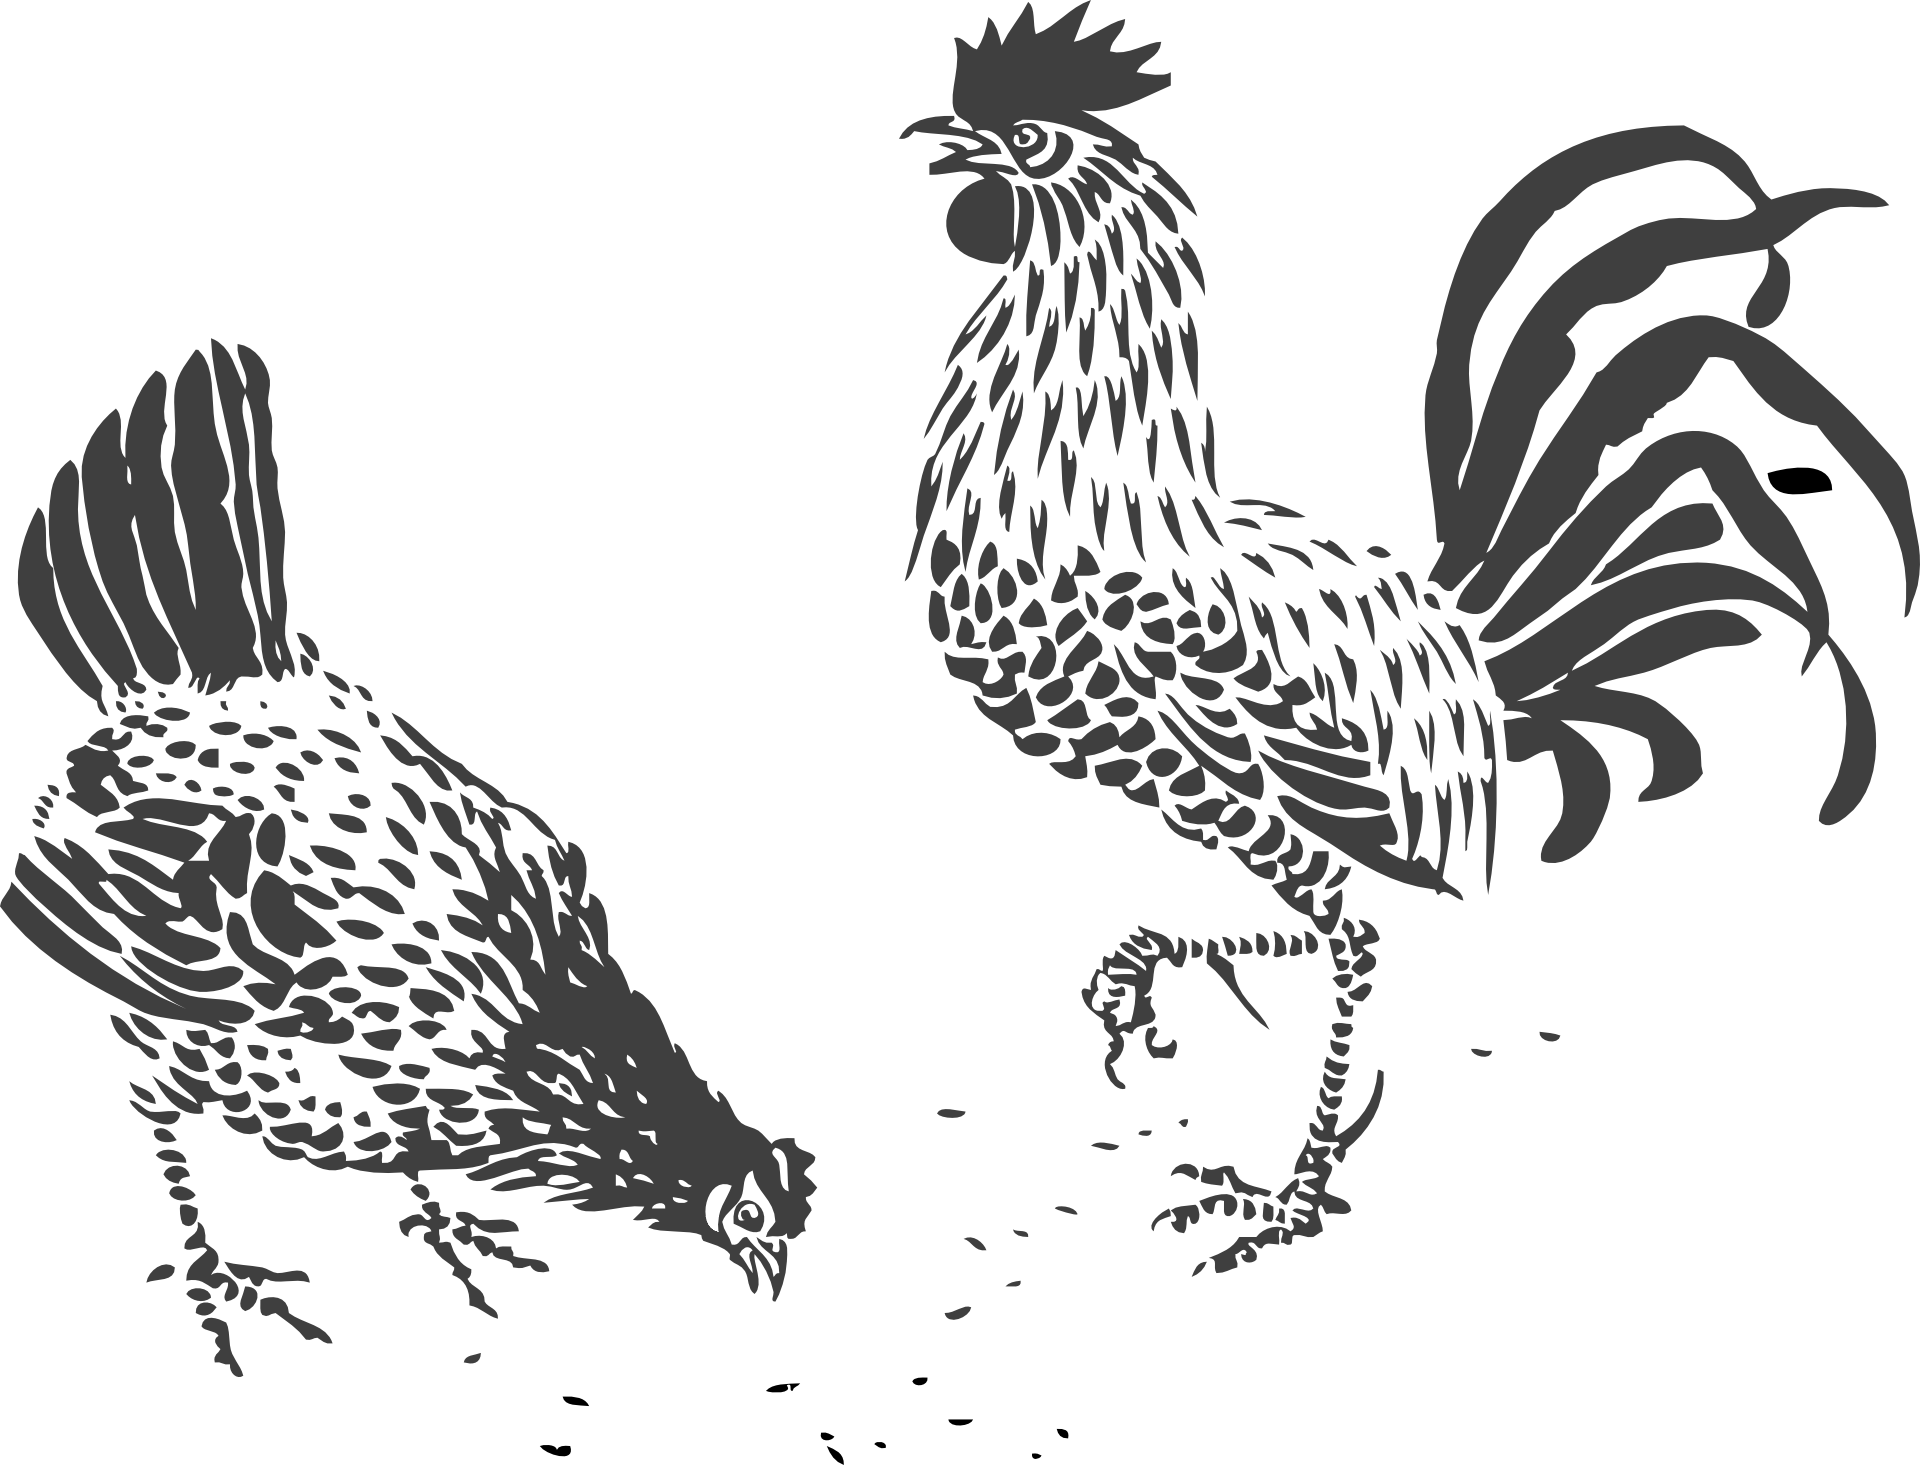 Transparent rooster drawing. Chicken line art clip